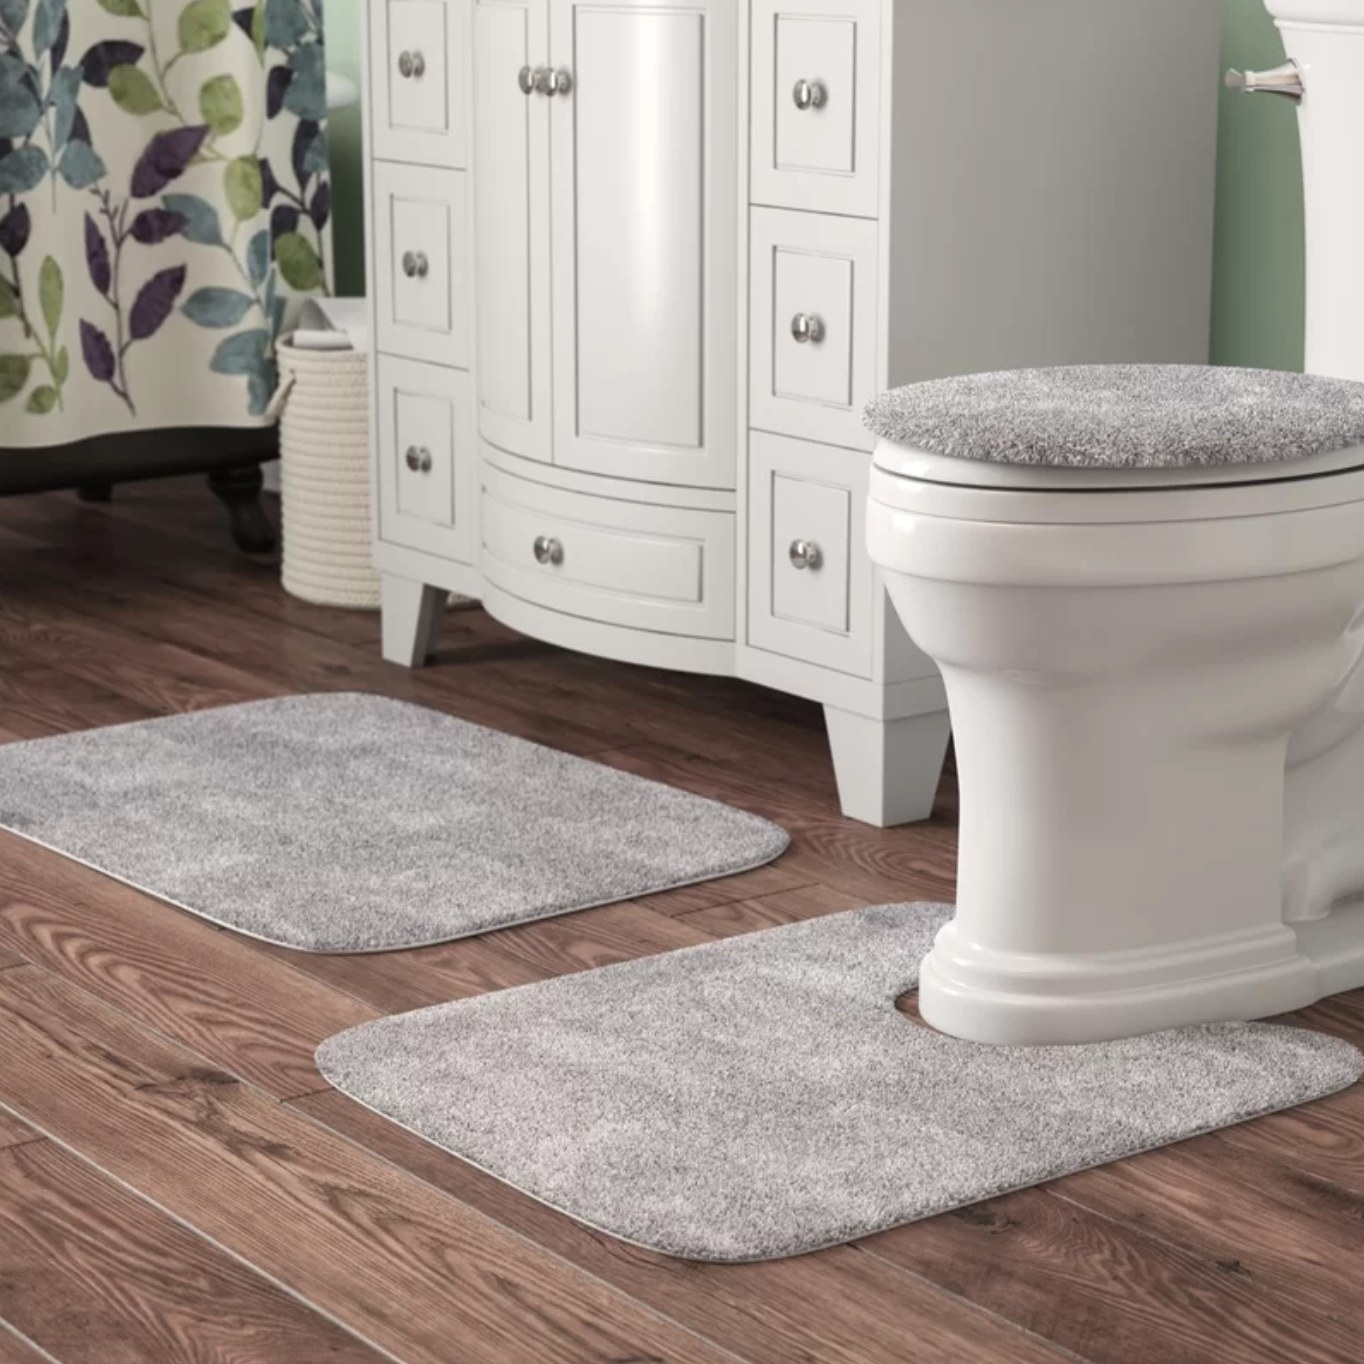 The three-piece set being used as a toilet cover, bathmat, and rug